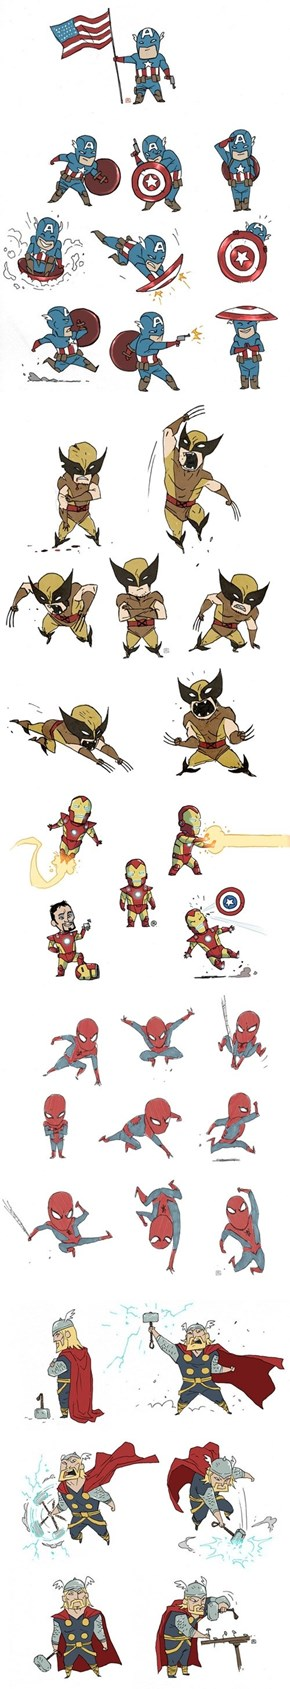 The Cutest Avengers